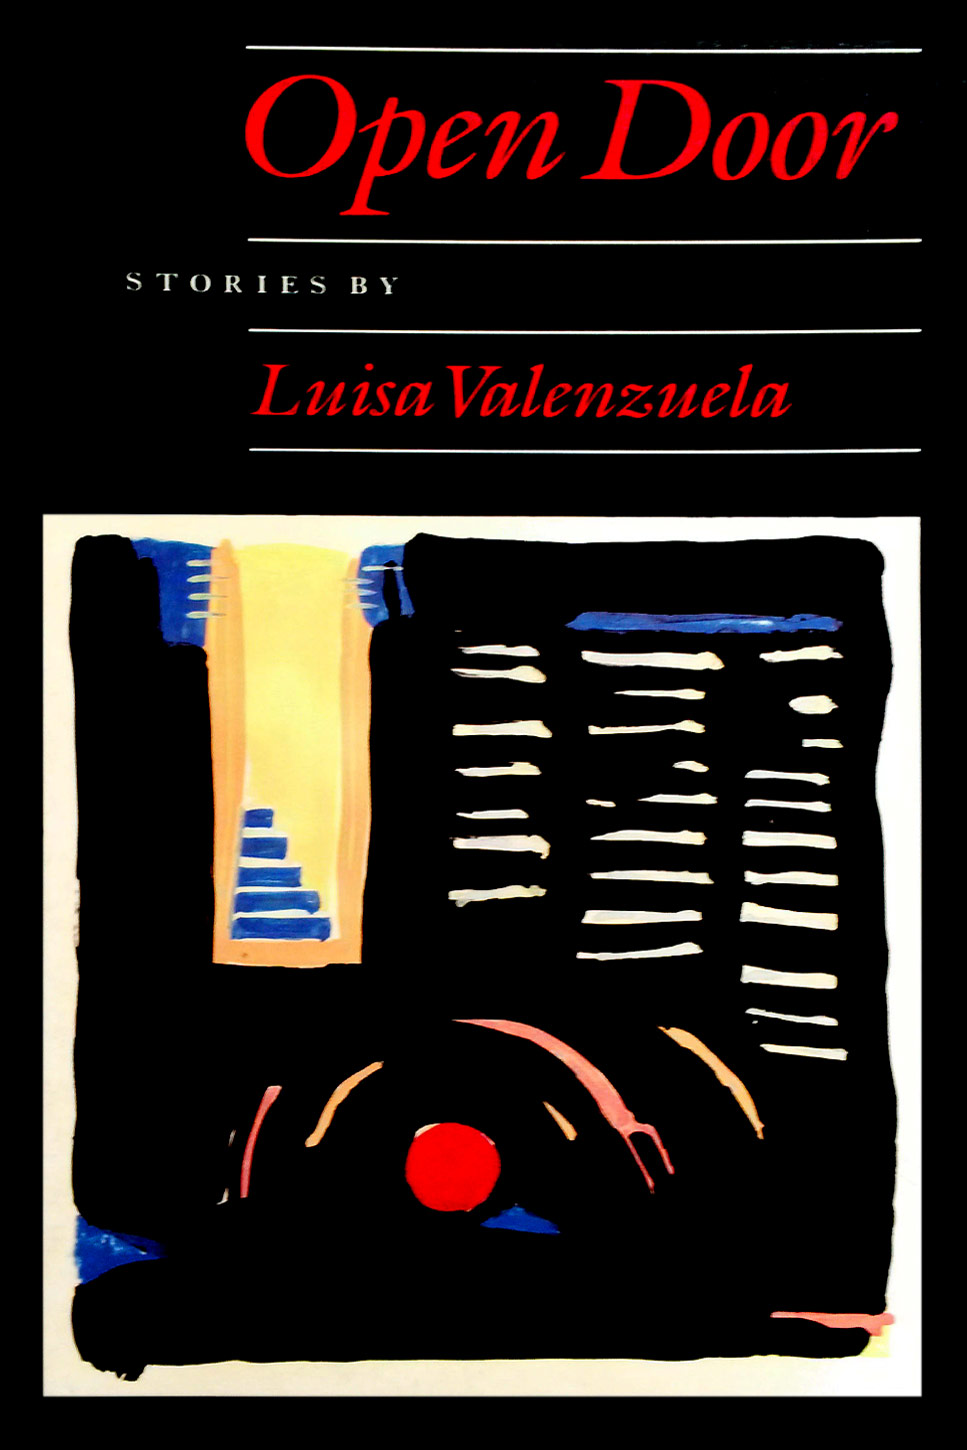 Open Door. Stories by Luisa Valenzuela